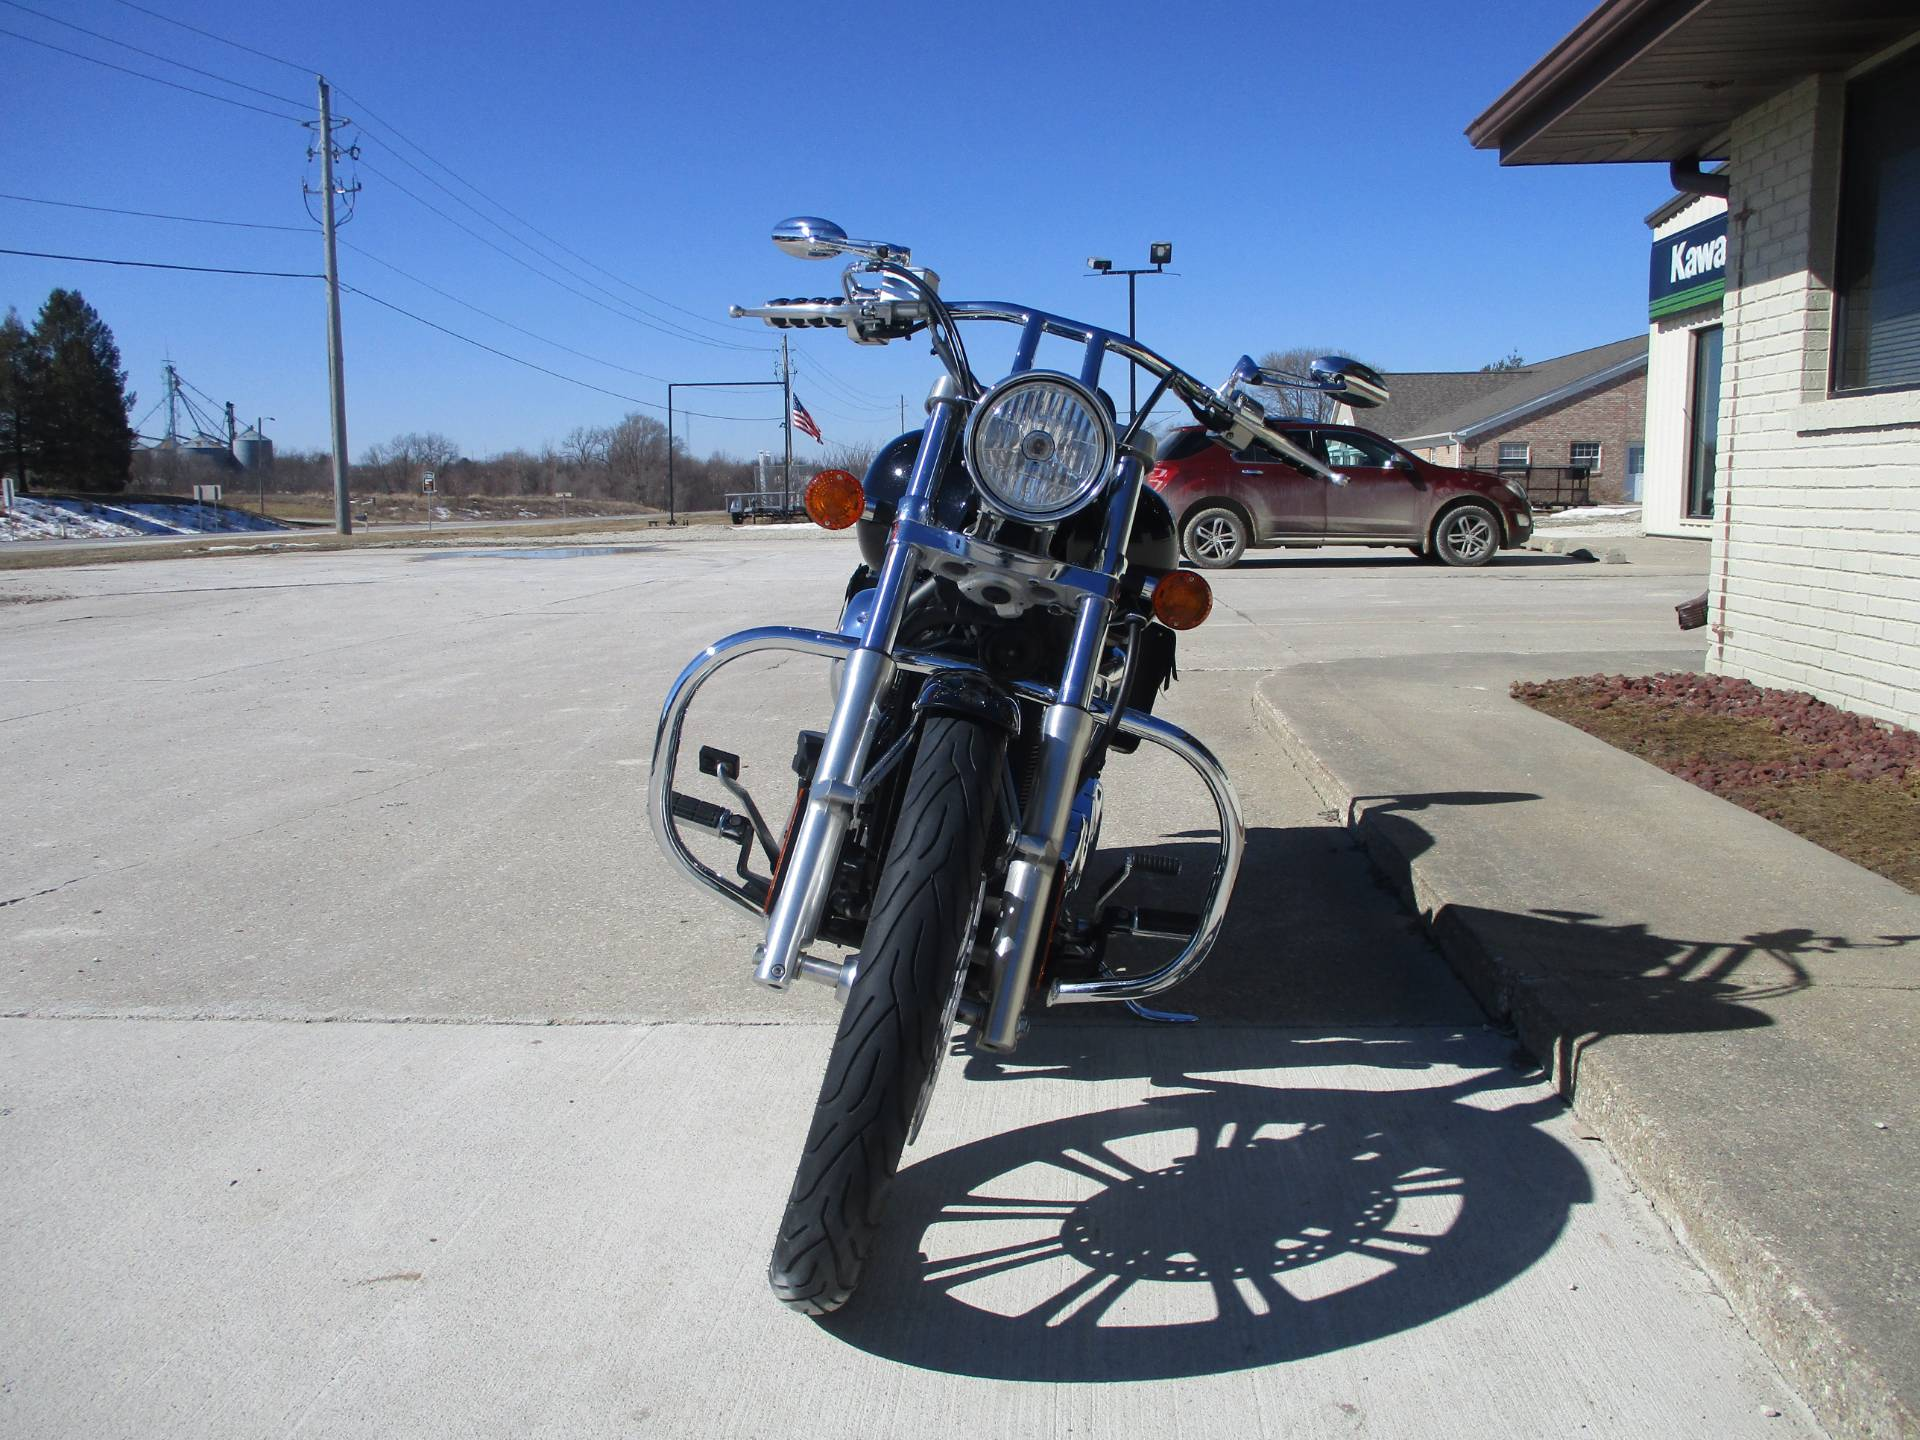 2008 Kawasaki VN900C8F in Winterset, Iowa - Photo 7